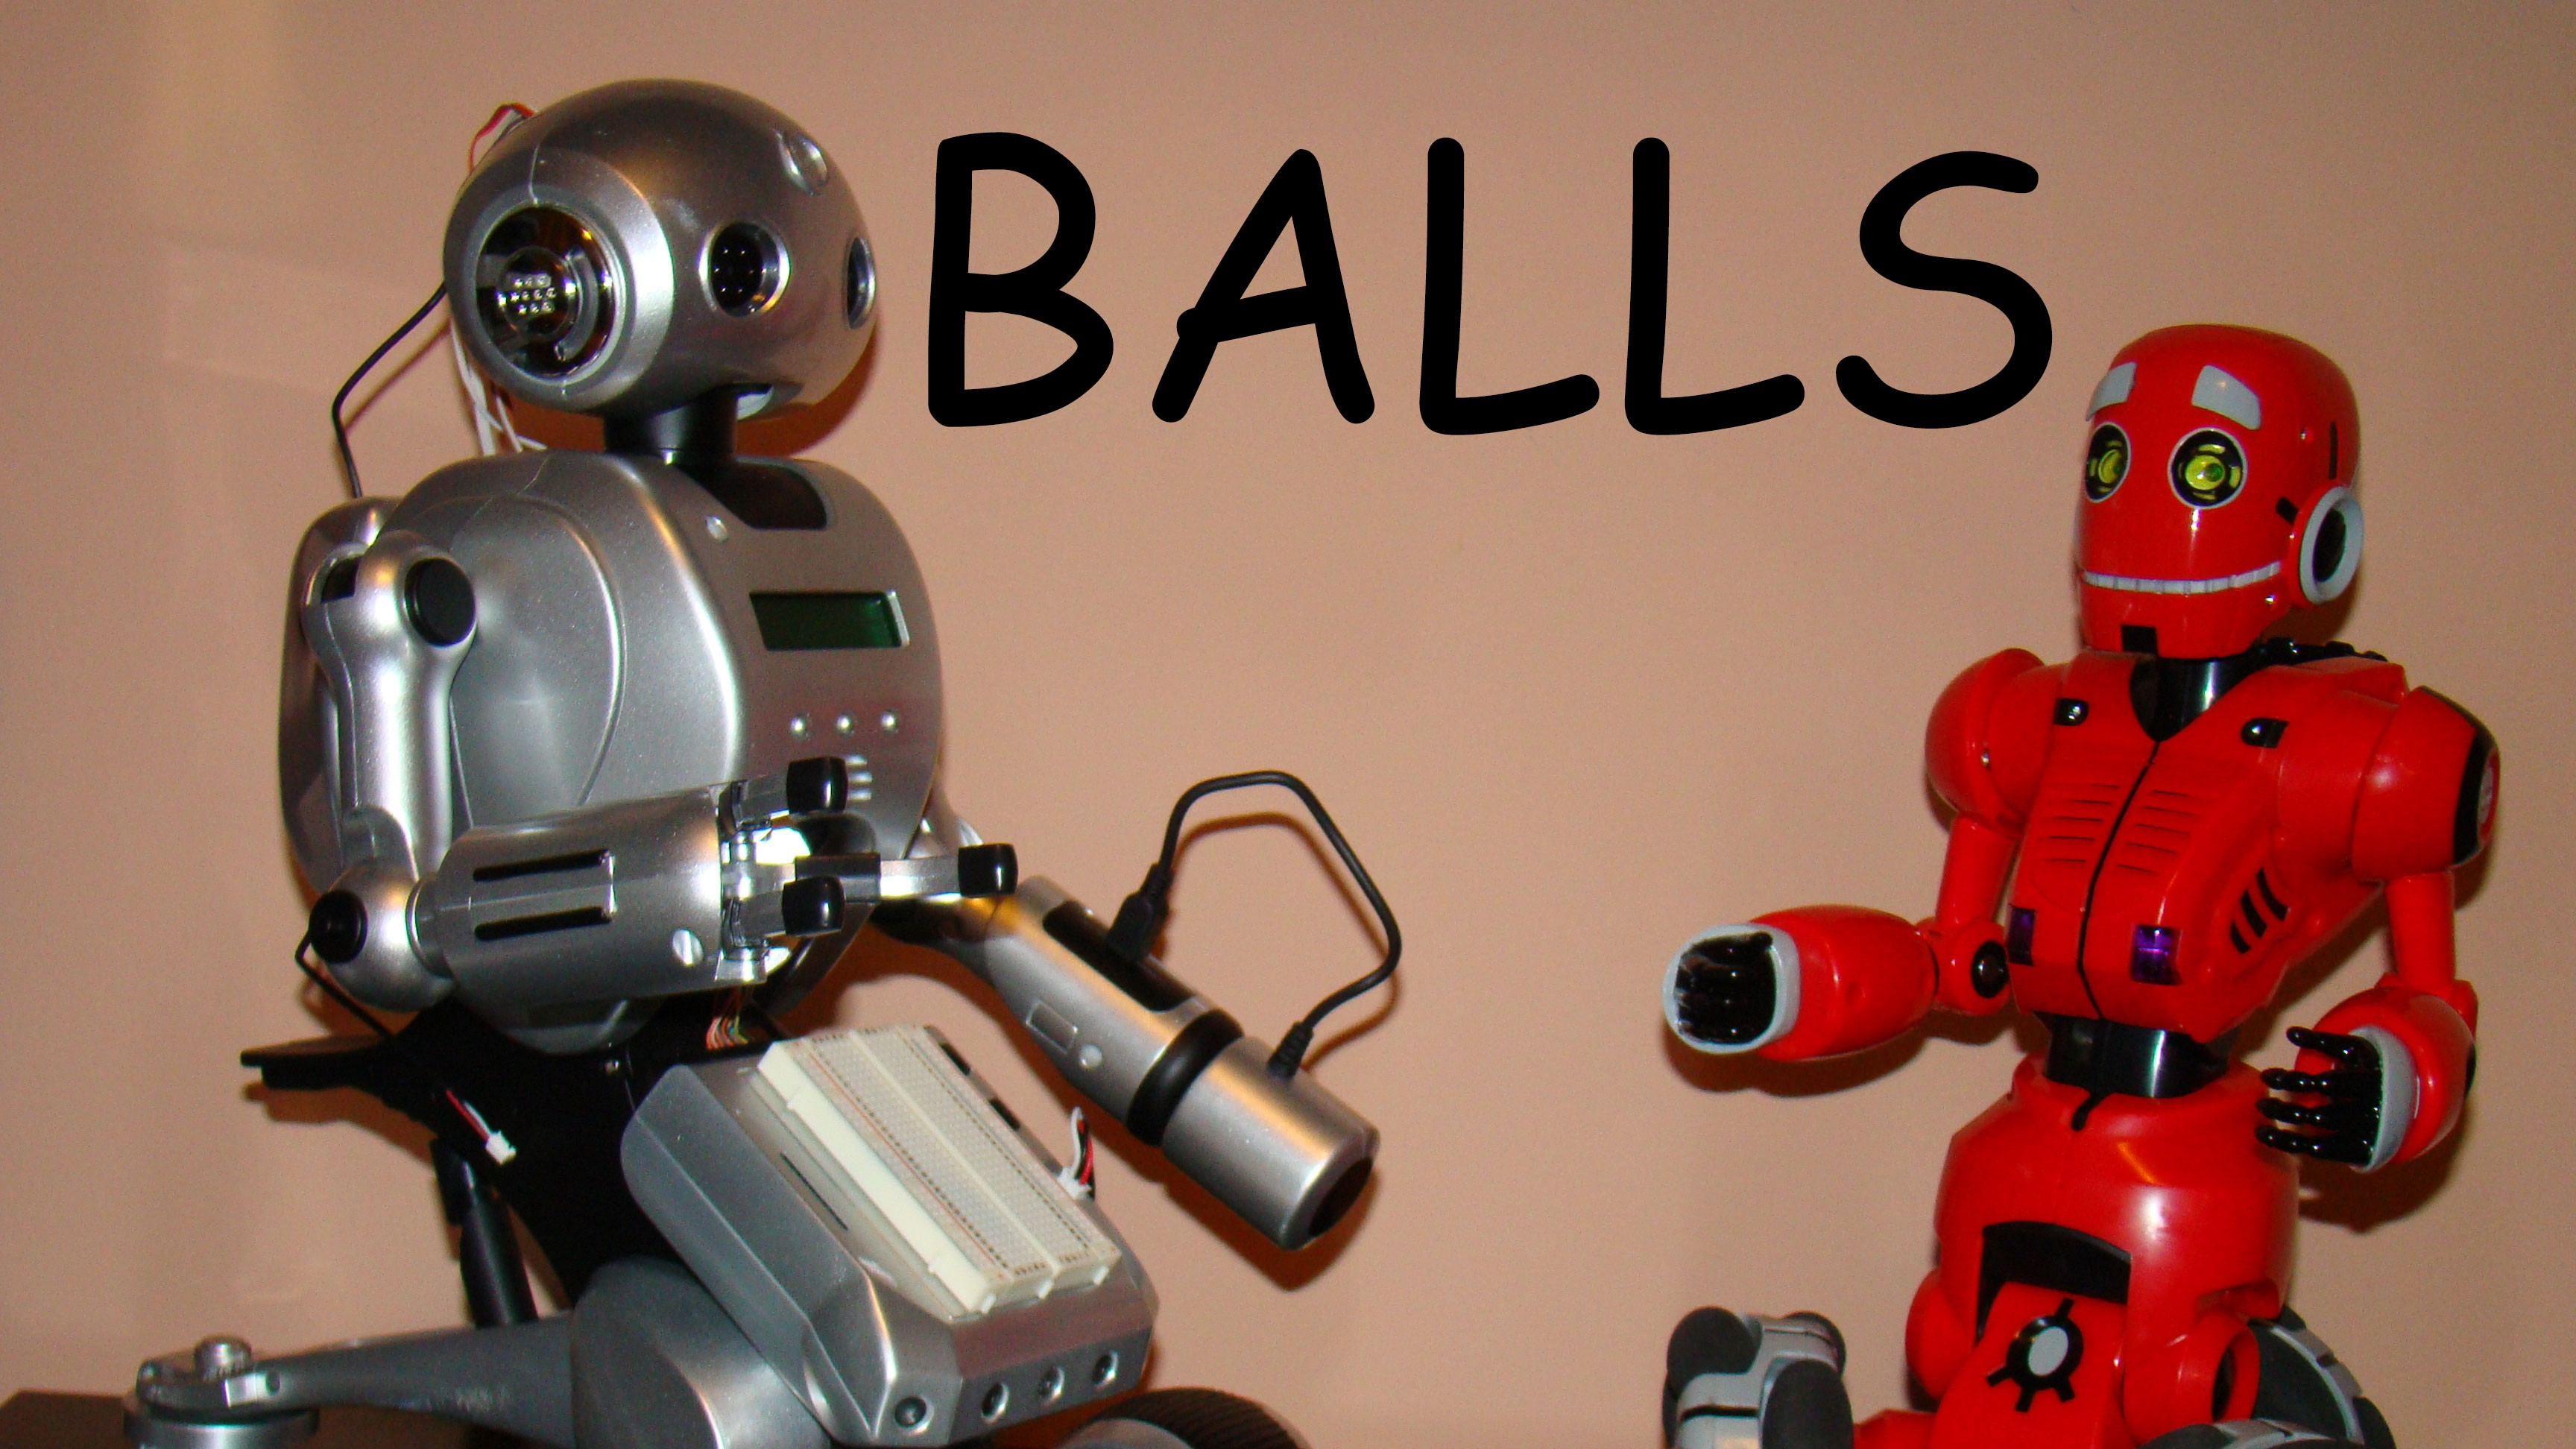 facebook ai robots invented their own language mostly about balls